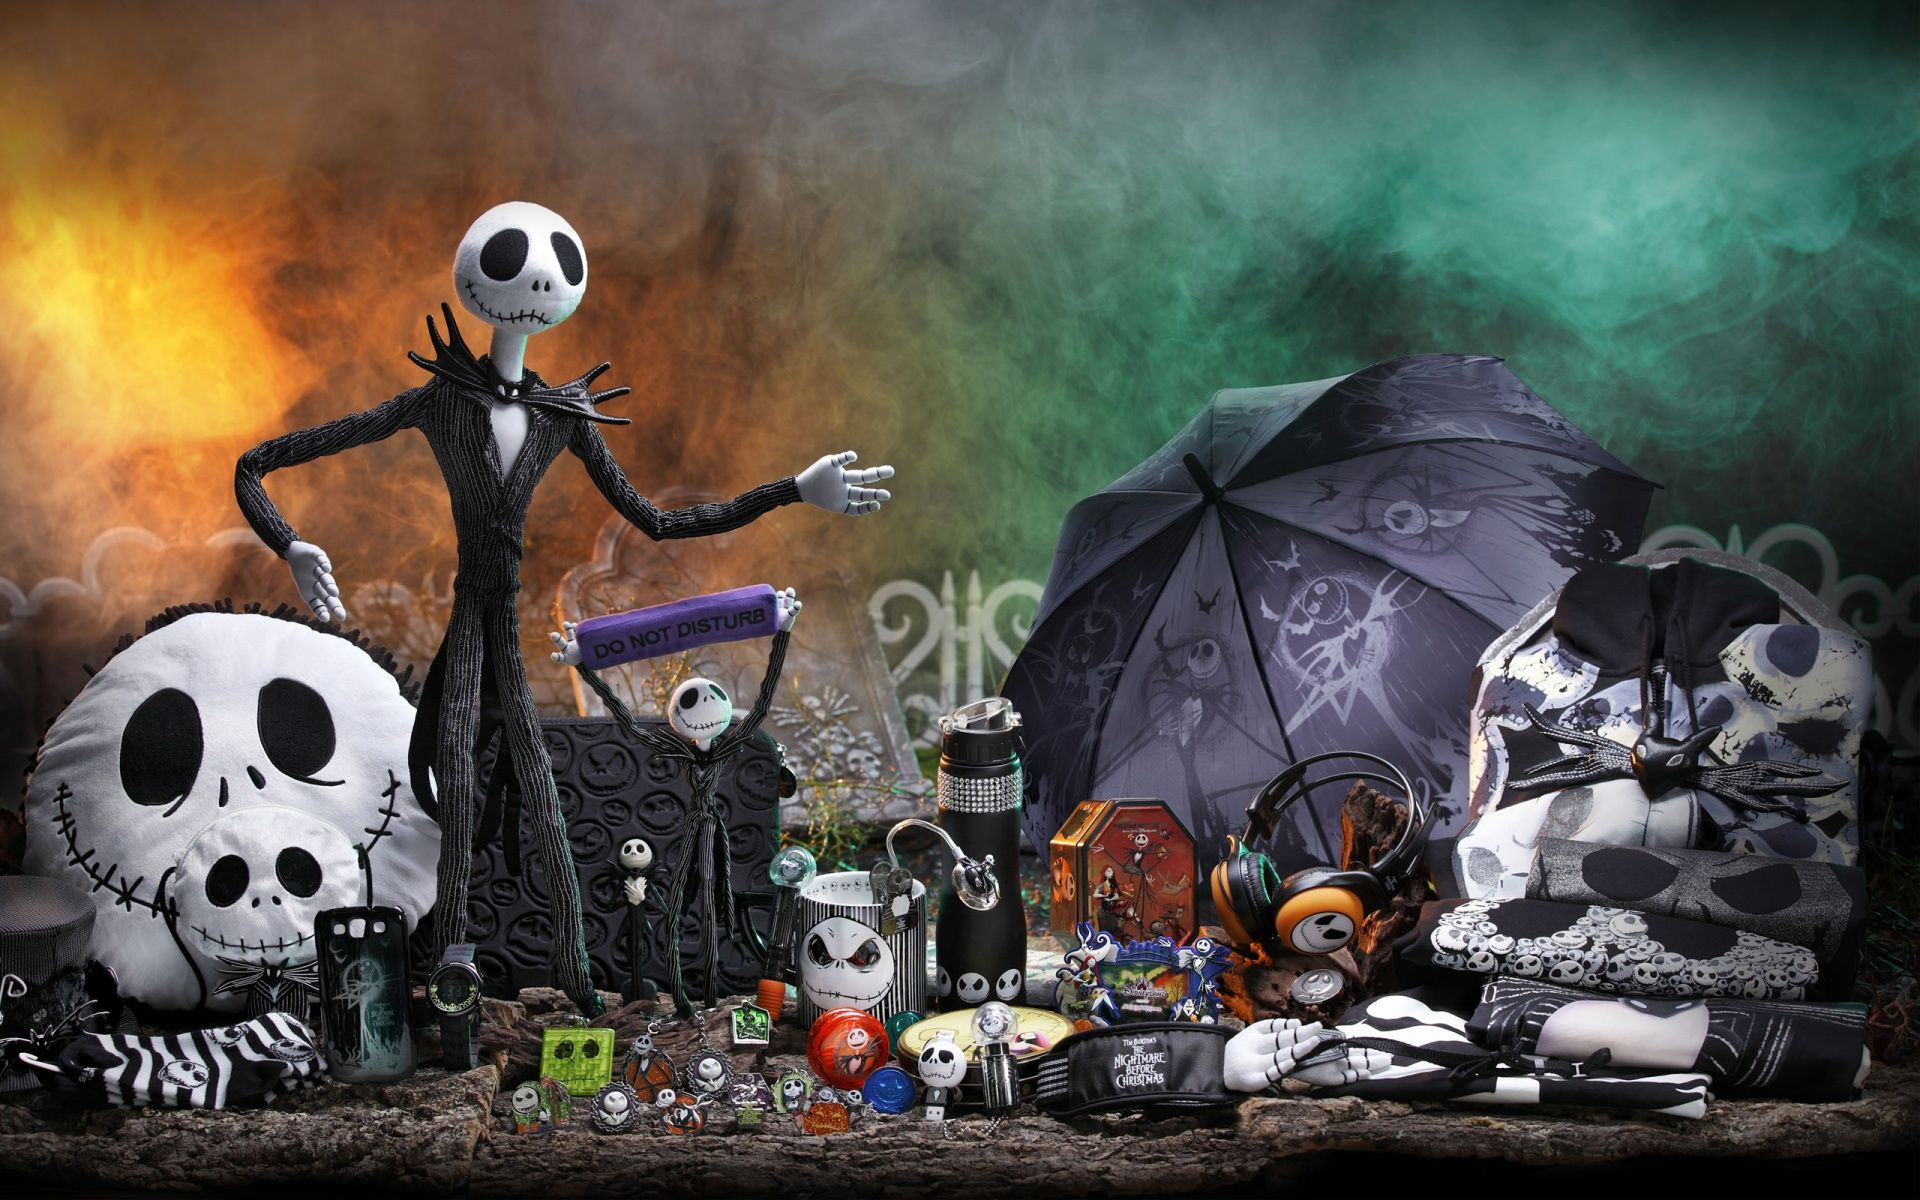 Nightmare Before Christmas Wallpaper Nightmare Before Christmas Wallpaper Nightmare Before Christmas Halloween Halloween Wallpaper